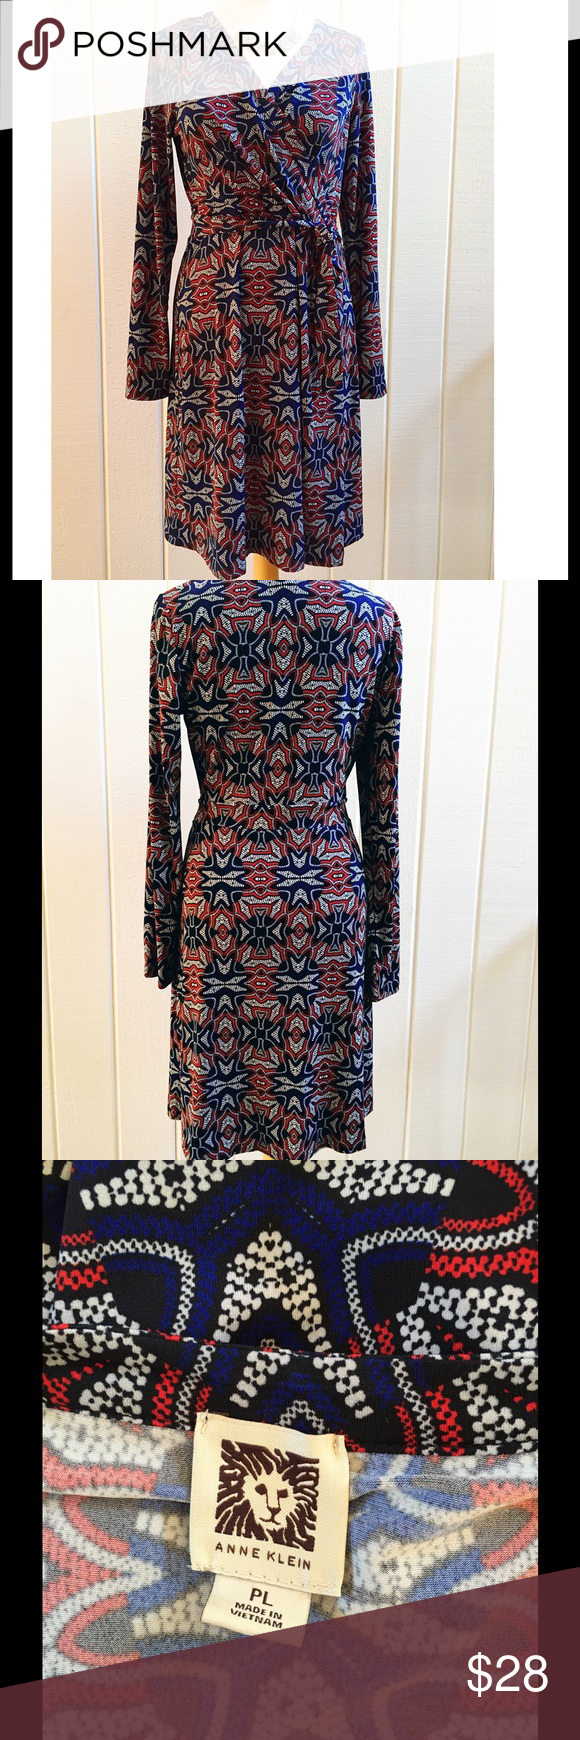 Navy & Red Jersey Wrap Dress Excellent condition. Worn once. Super flattering. Comes from a smoke- and pet-free house. Anne Klein Dresses